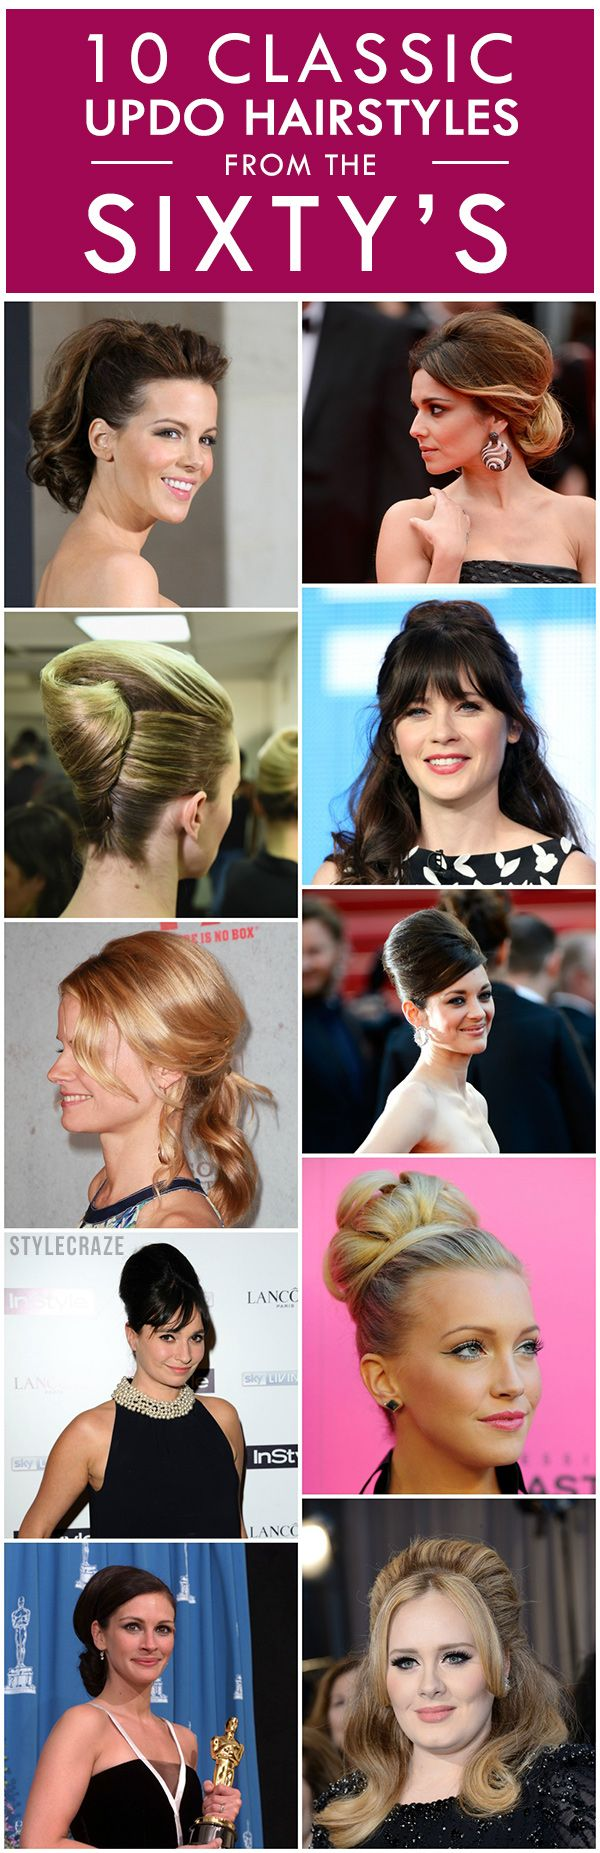 classic updo hairstyles from the 's  classic updo hairstyles  -  classic updo hairstyles from the 's